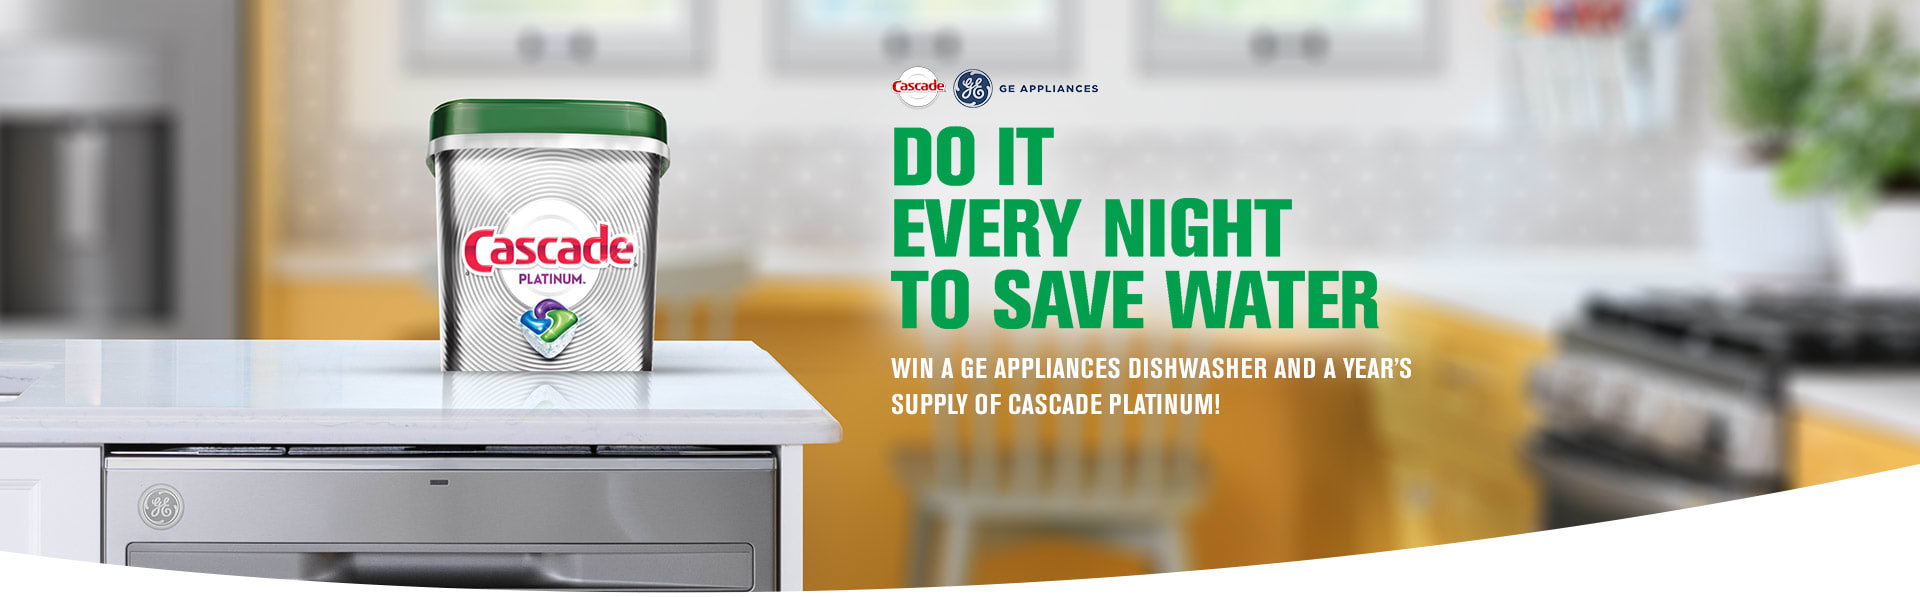 Win a GE Appliances Dishwasher and a Year Supply of Cascade Platinum